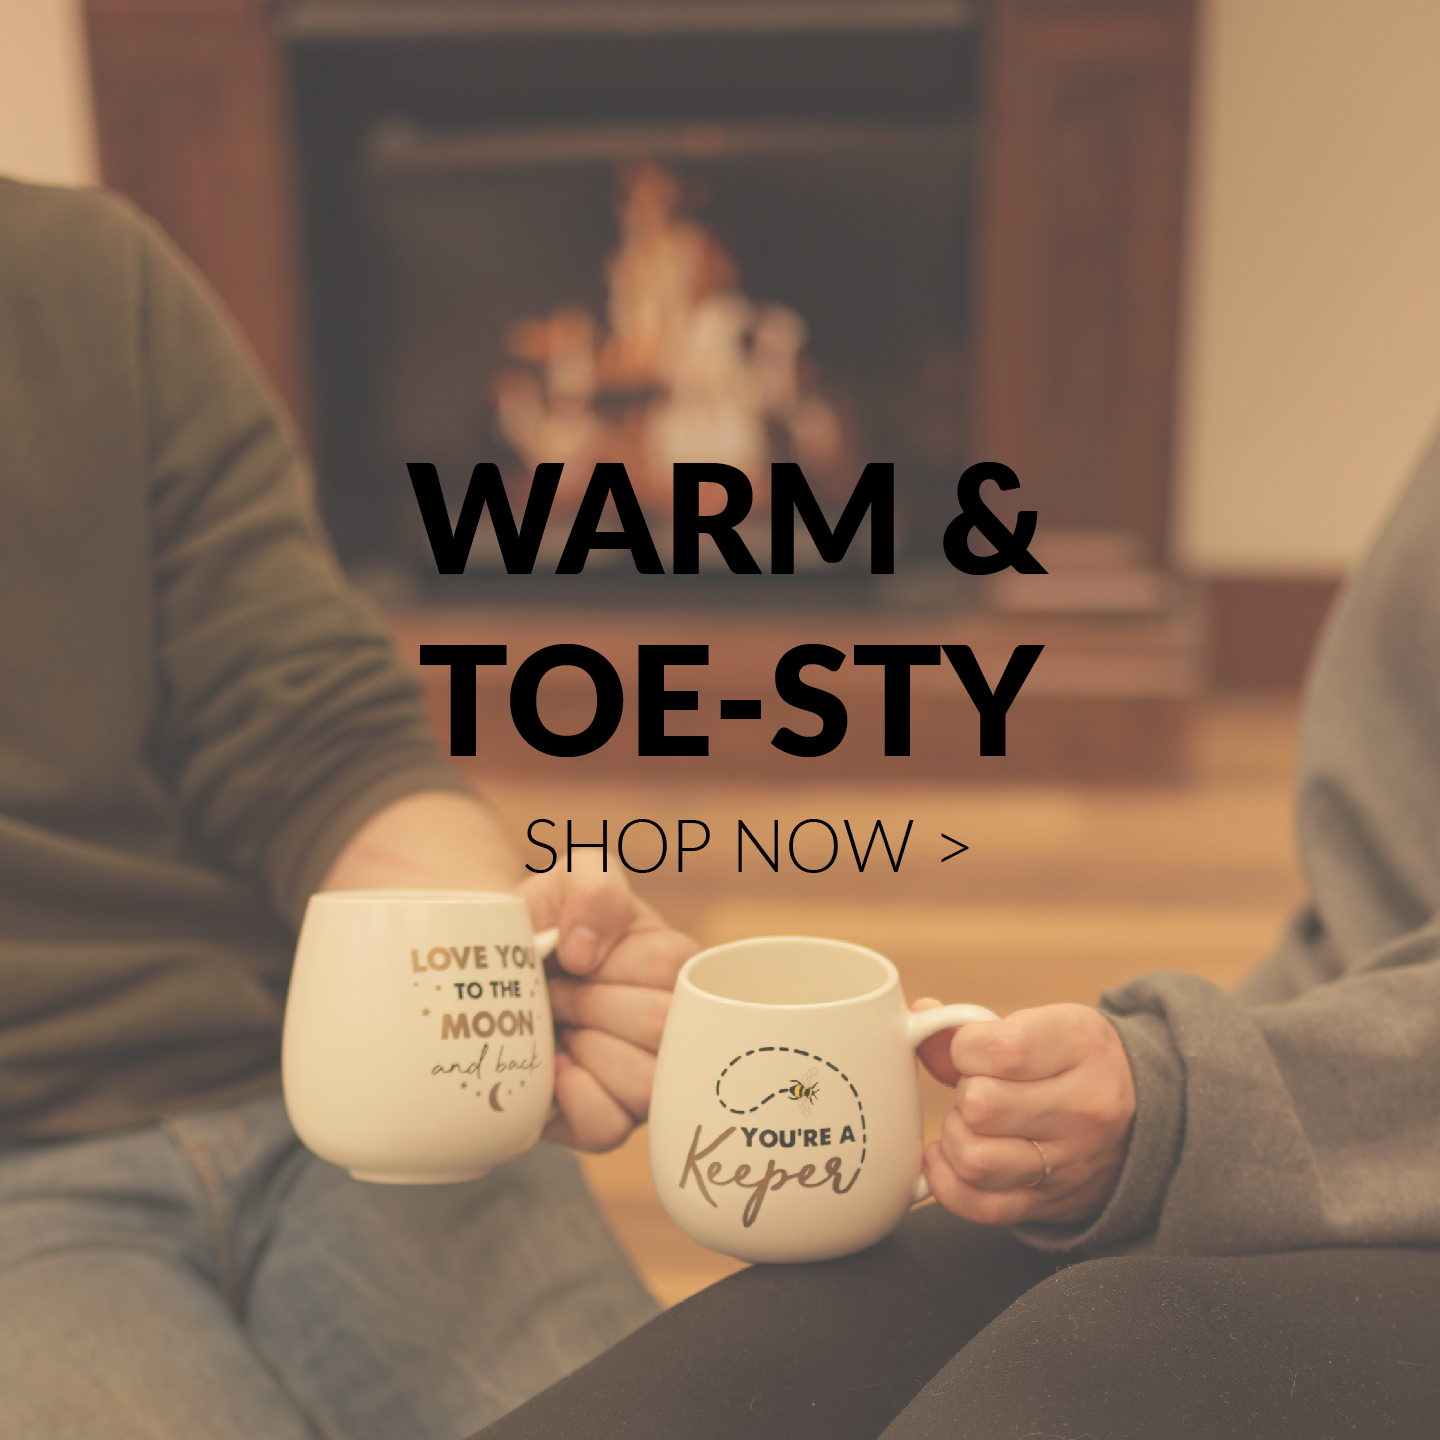 Warm & Toe-sty